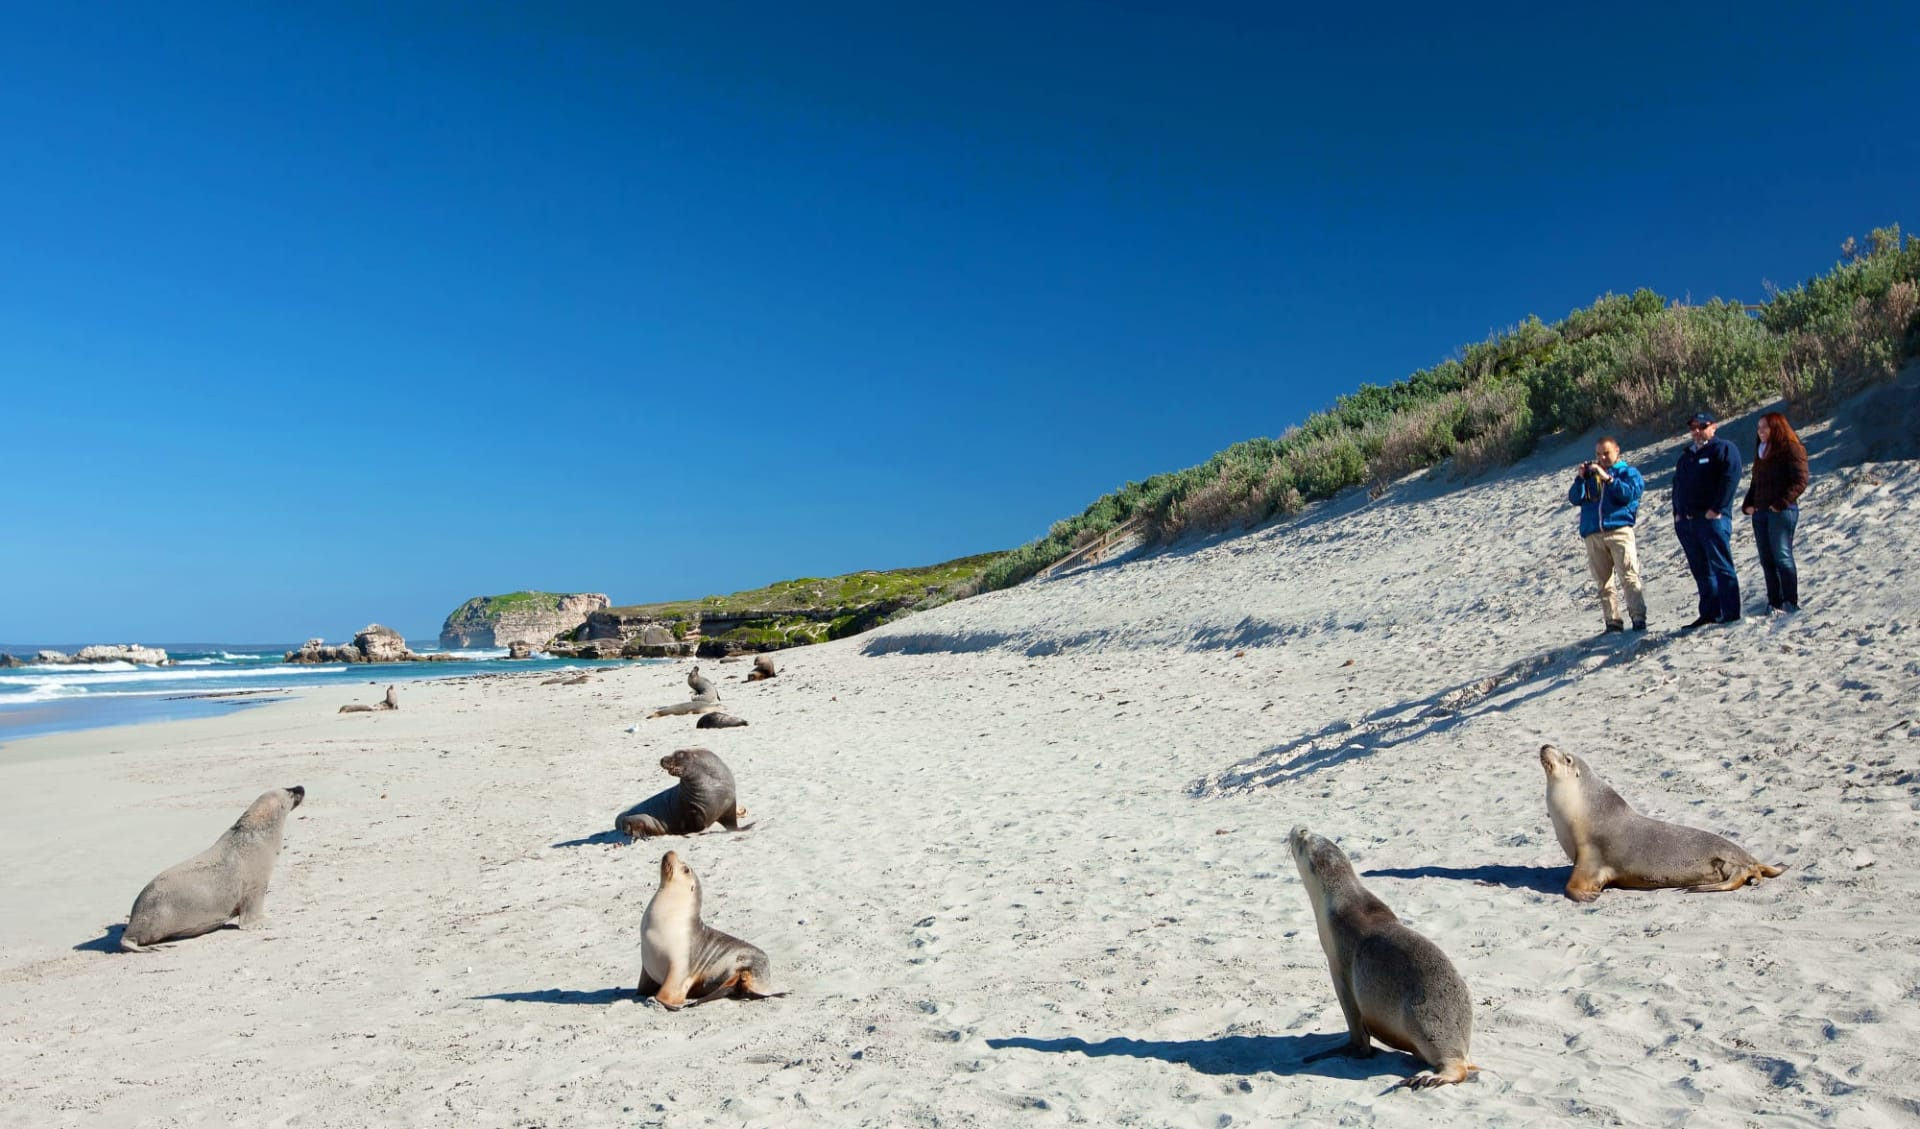 Nature Tour ab Adelaide: Seal Bay - Seehunde am Strand